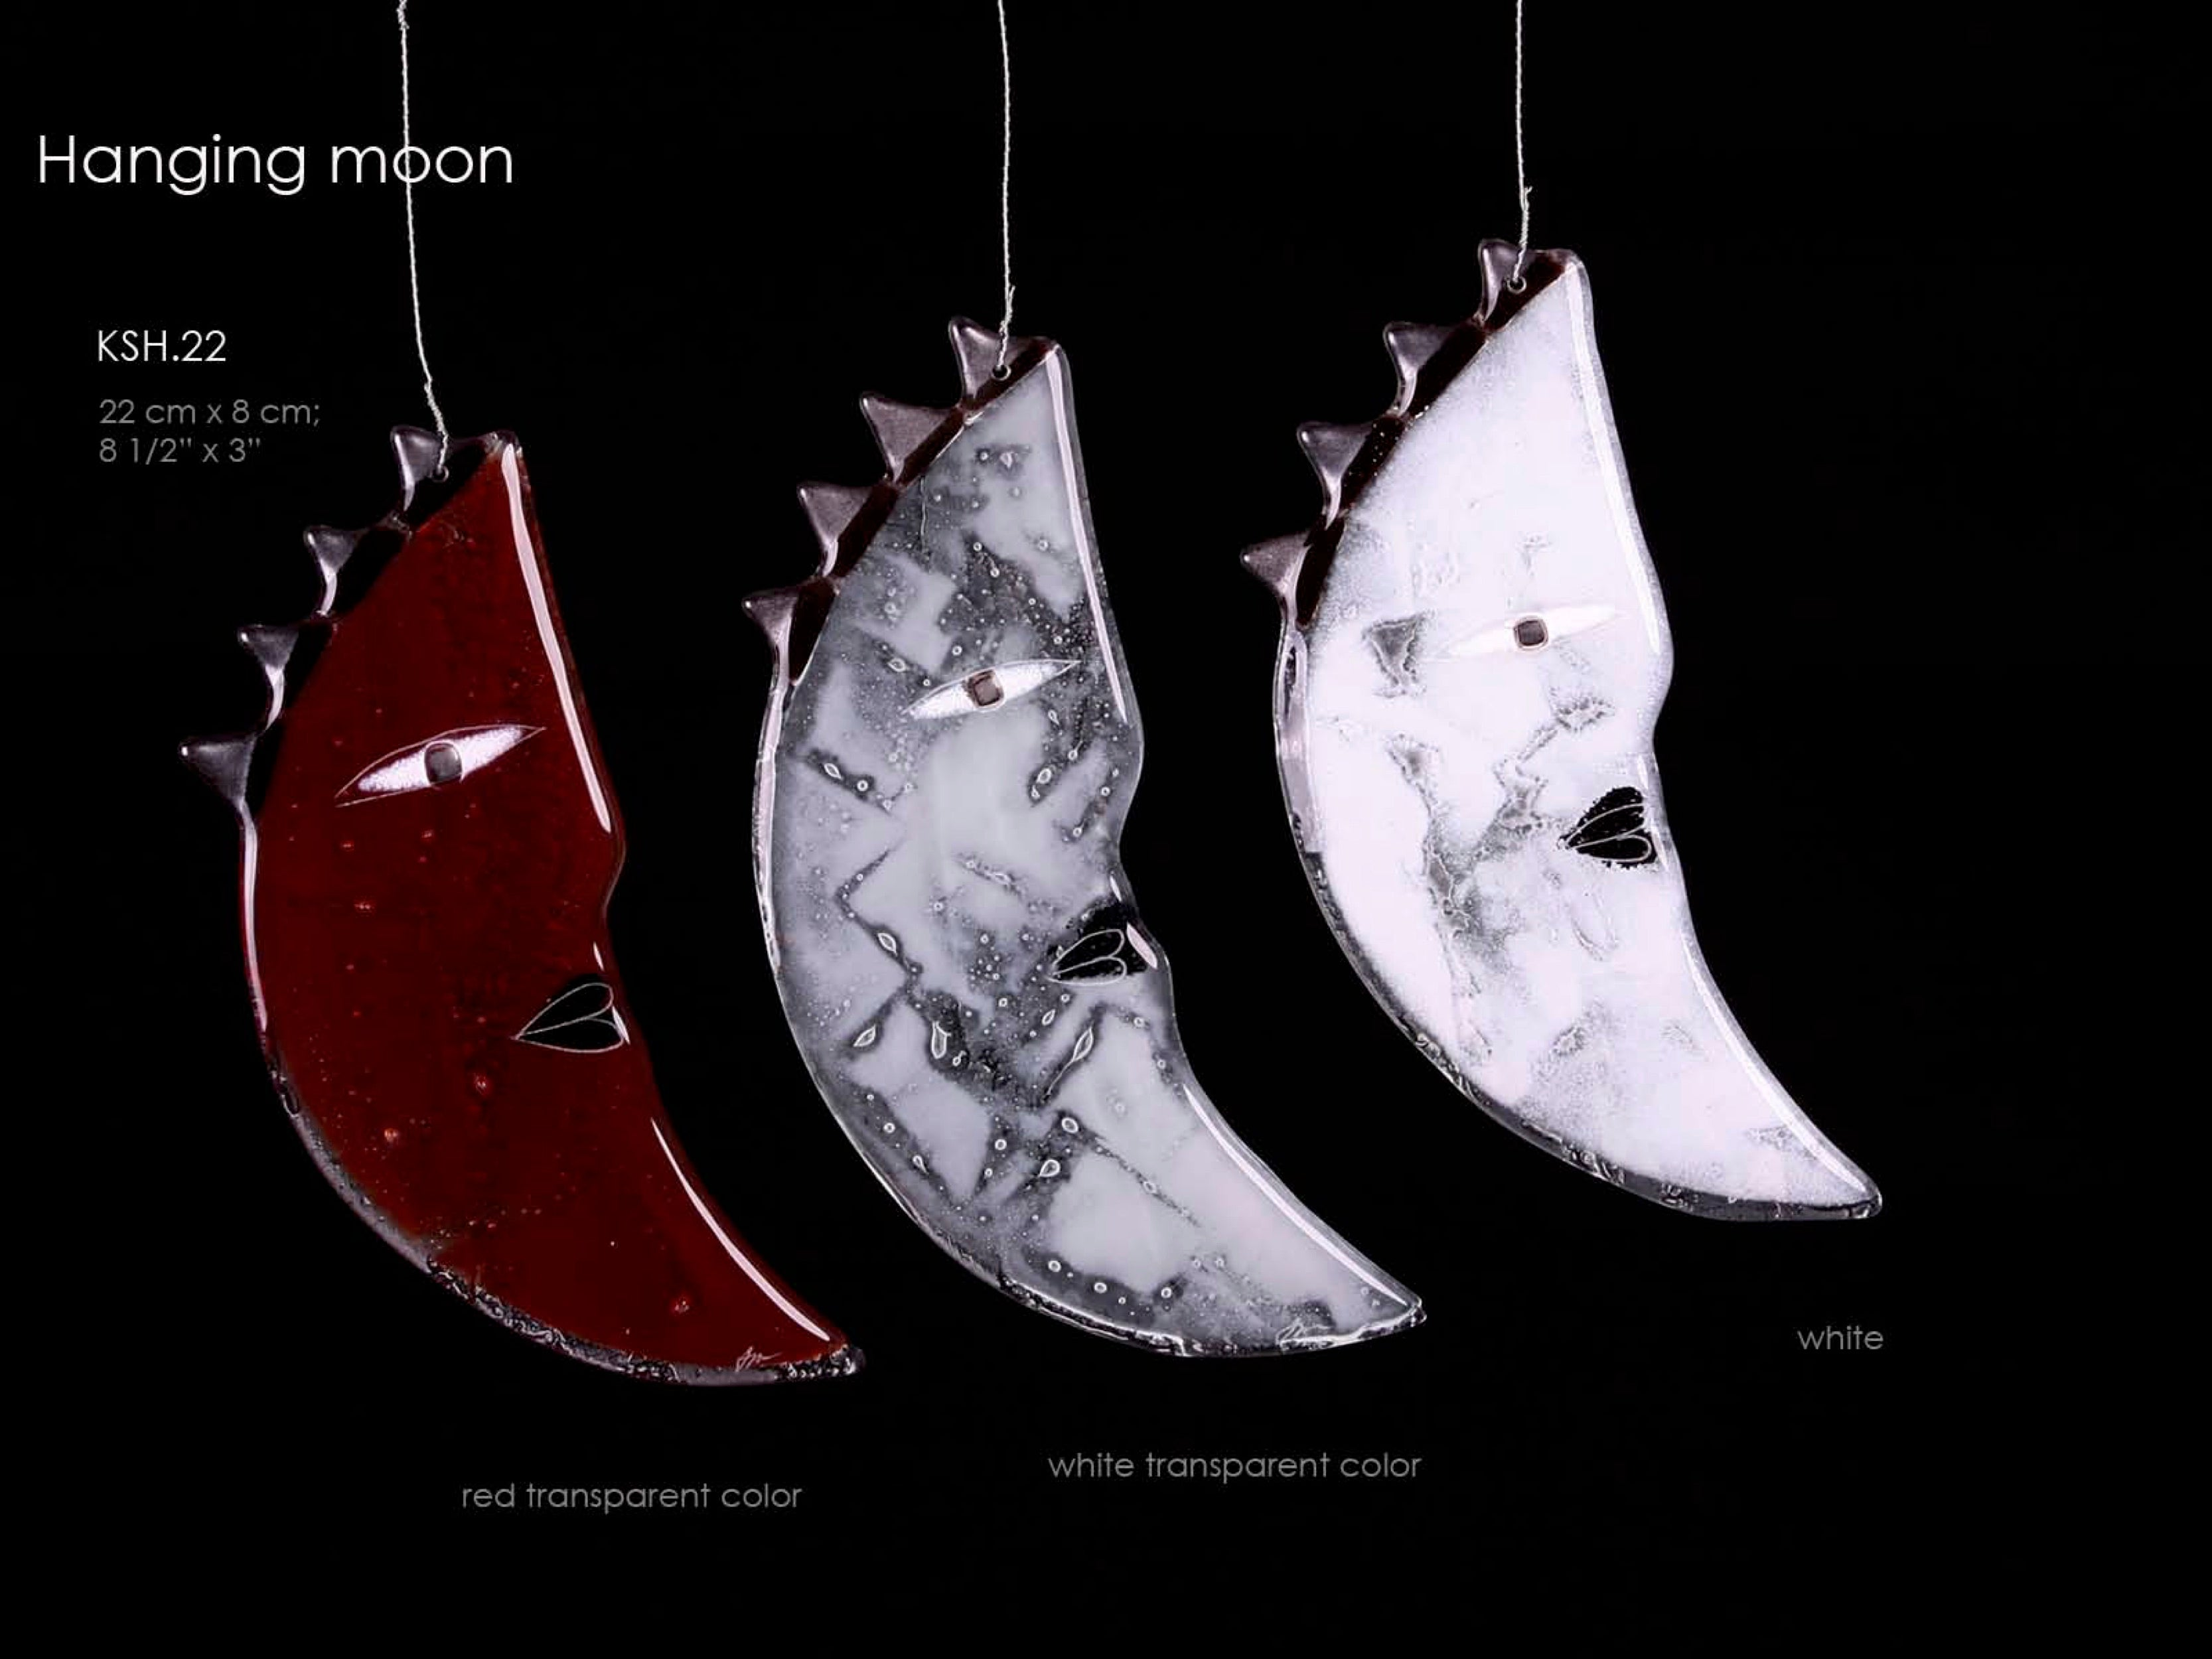 Moon hanging made from glass, unique design perfect for present idea from Modern City Art